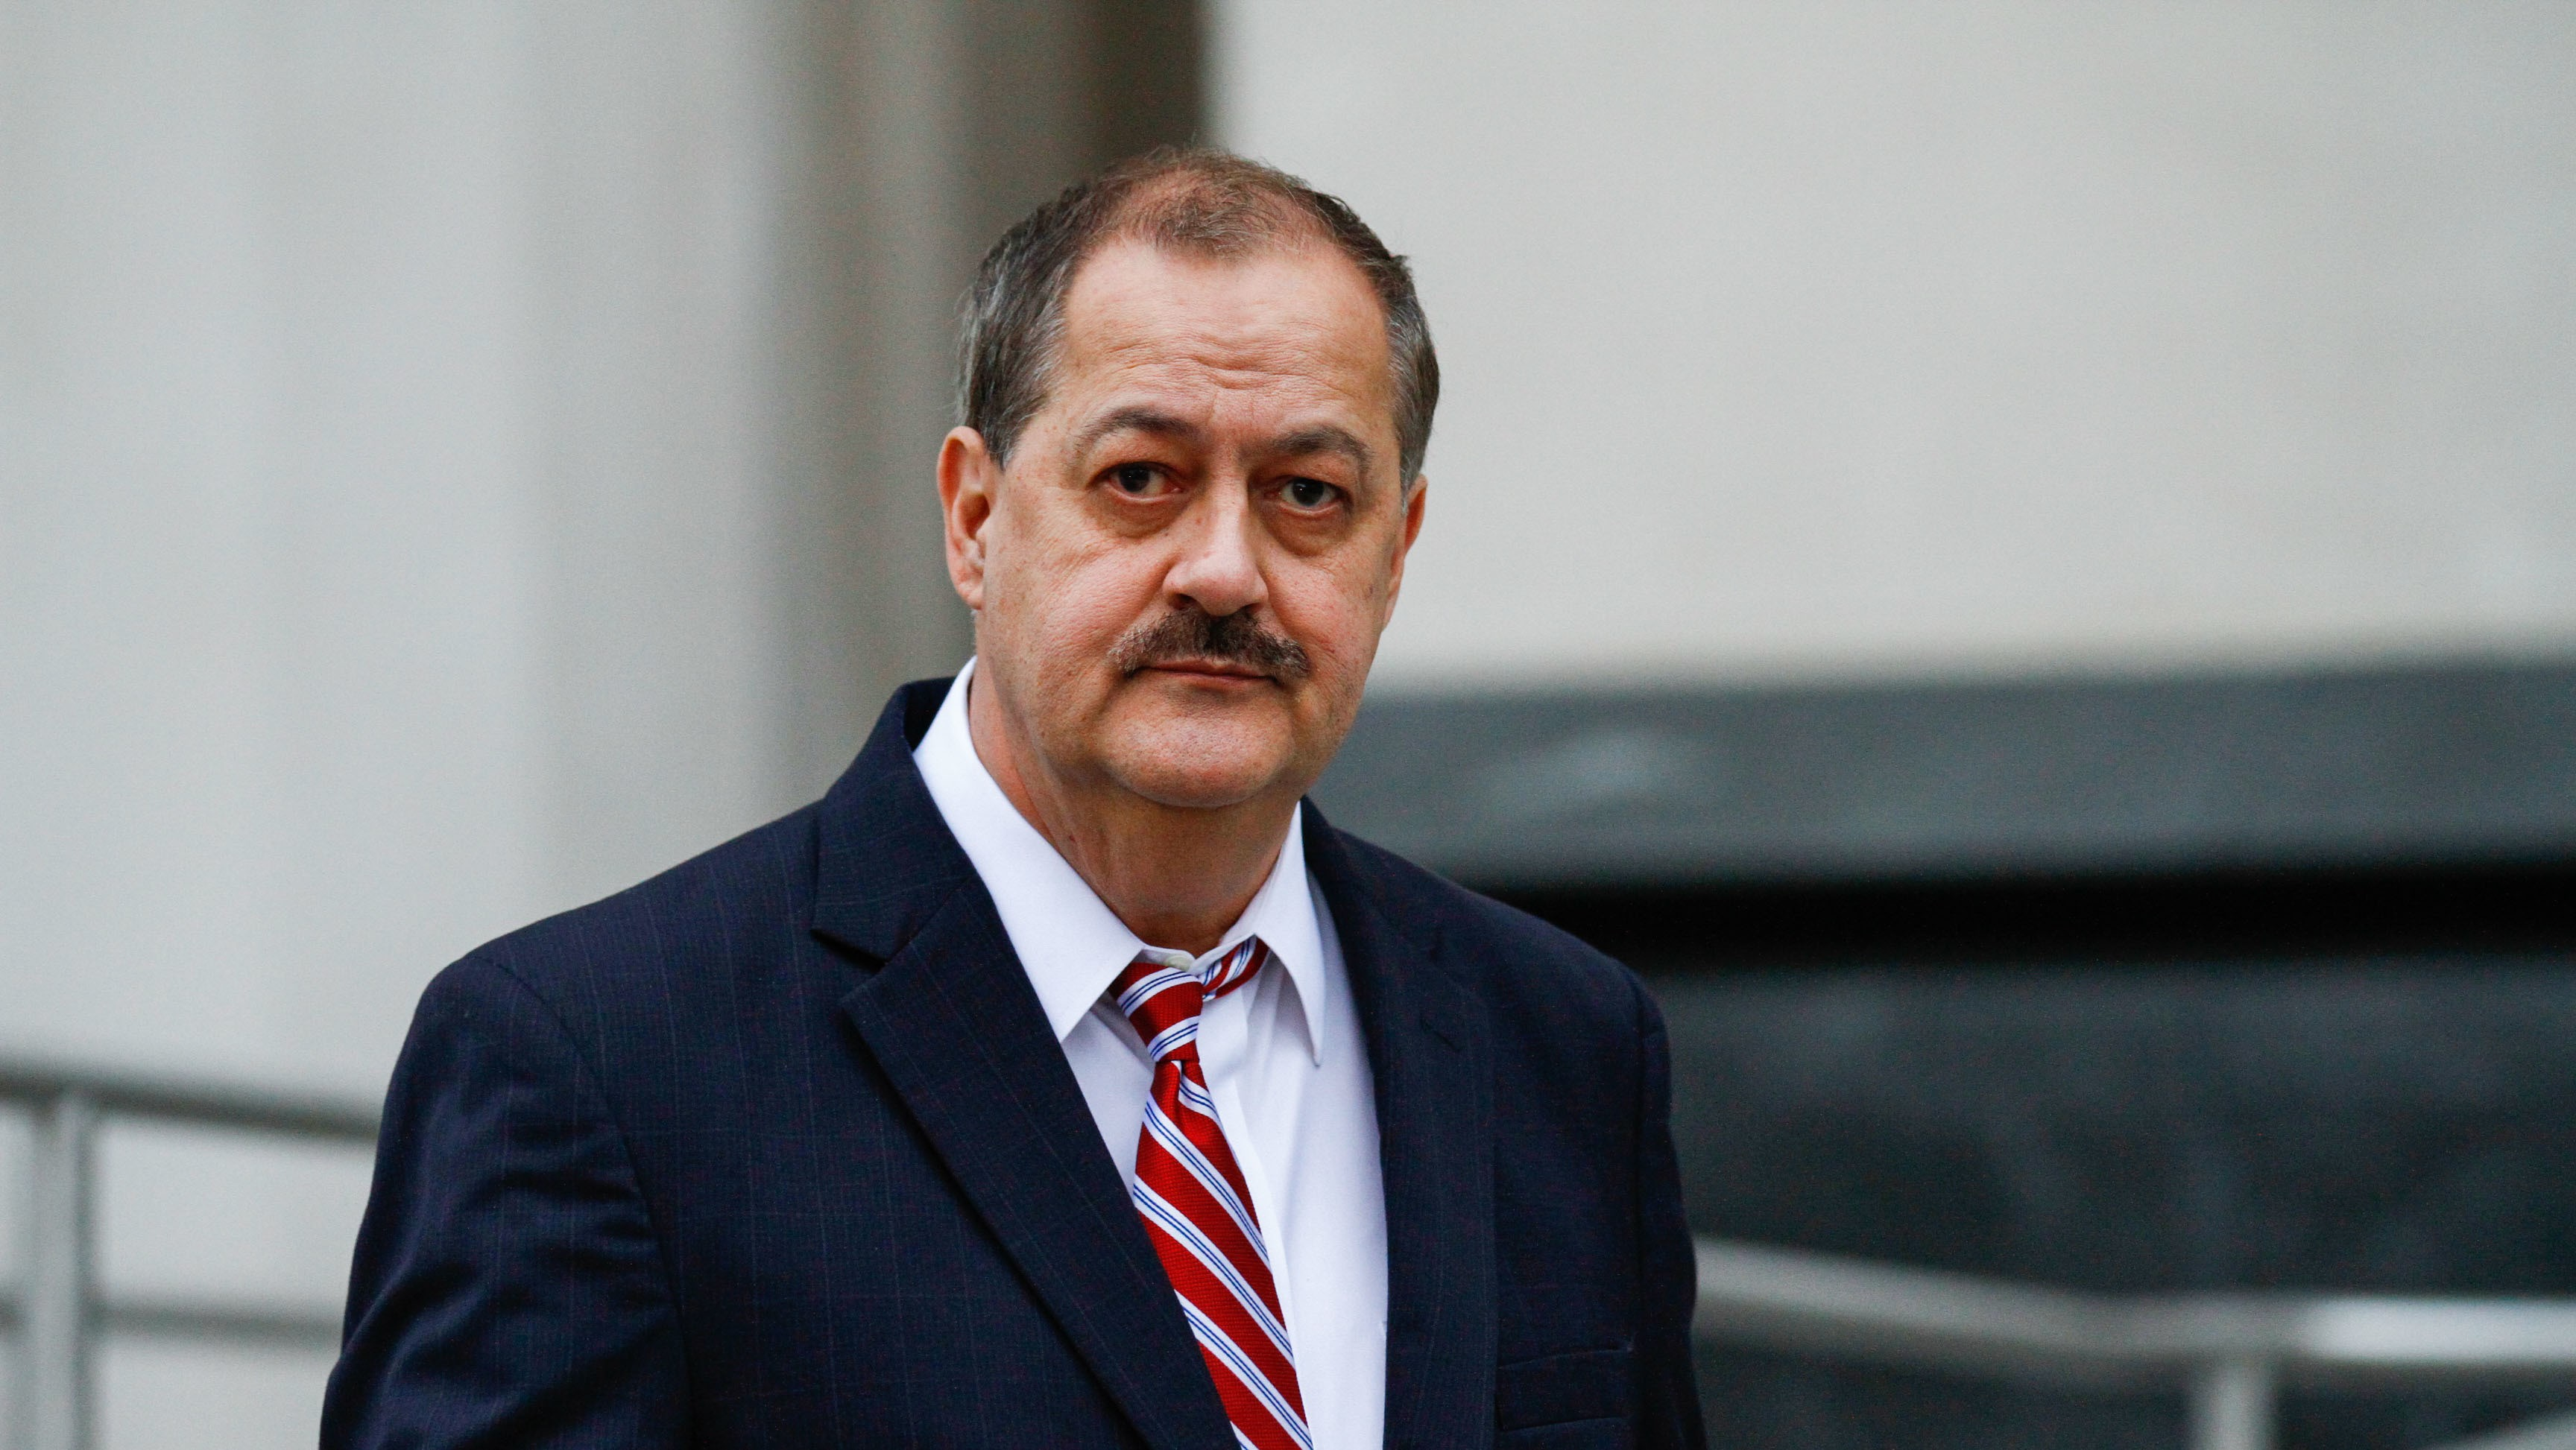 After 29 Deaths, This Notorious Coal Boss Is Headed to Prison